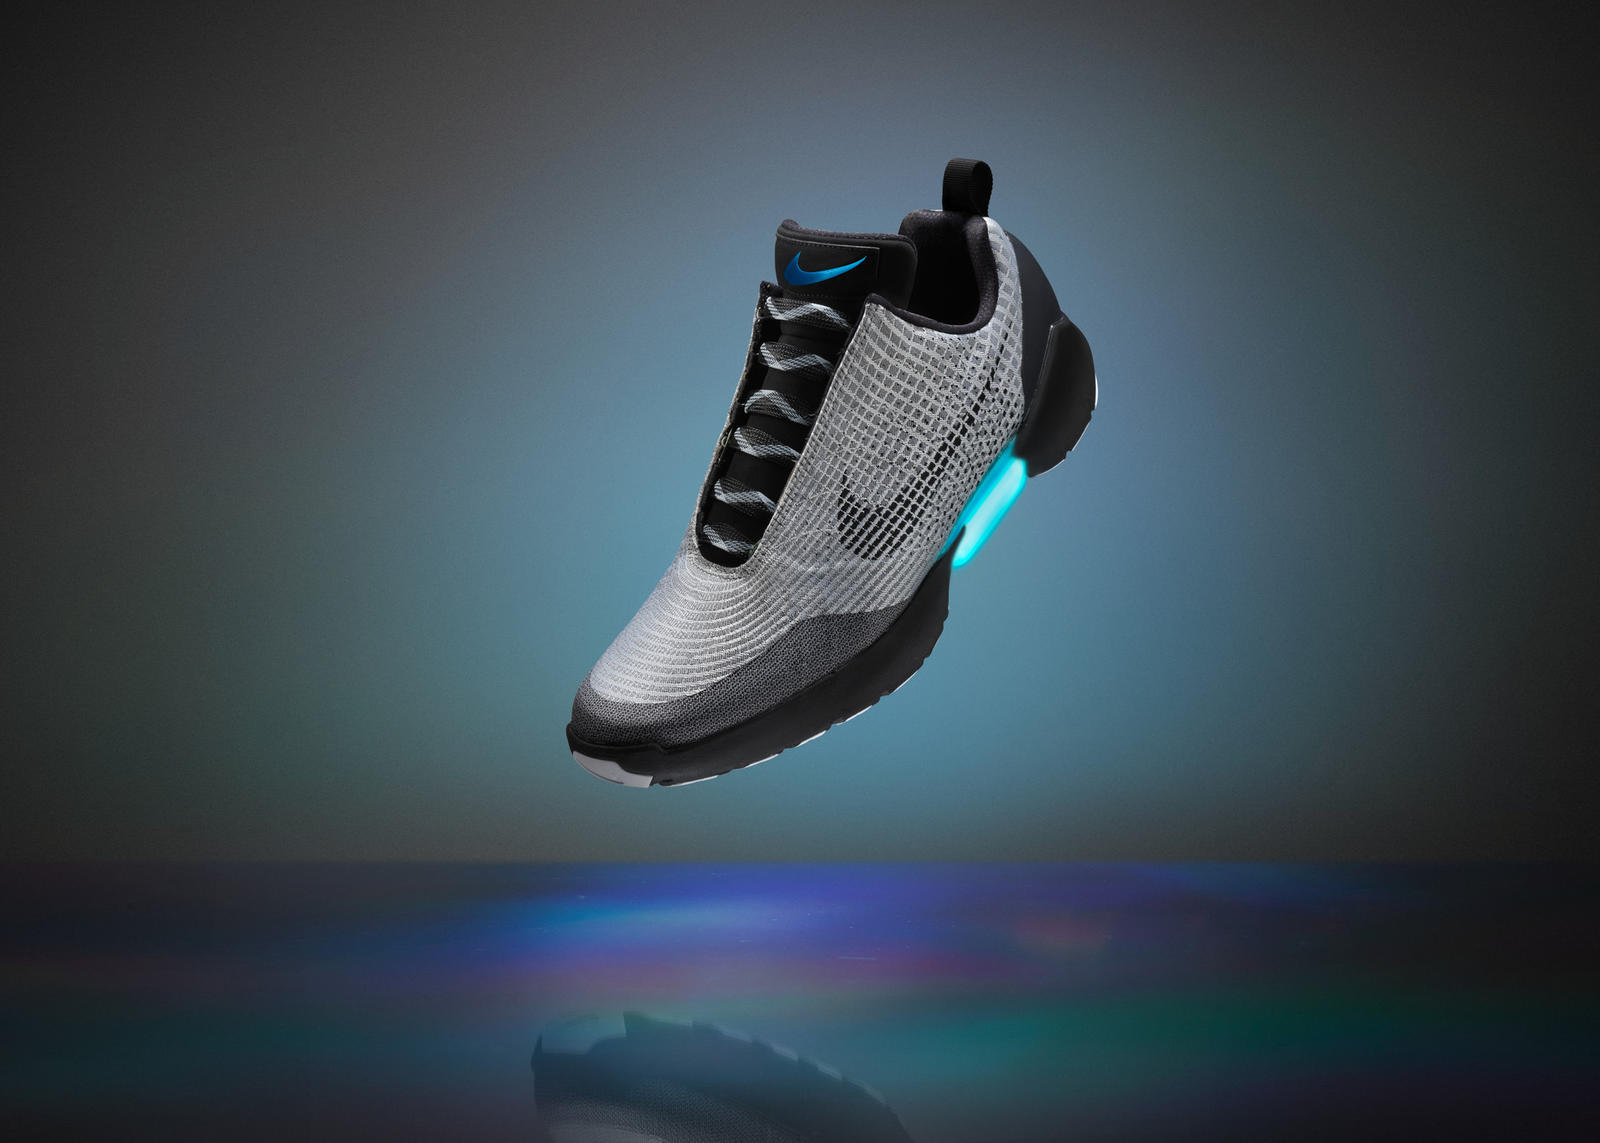 nike-hyperadapt-2016-lacing-shoe